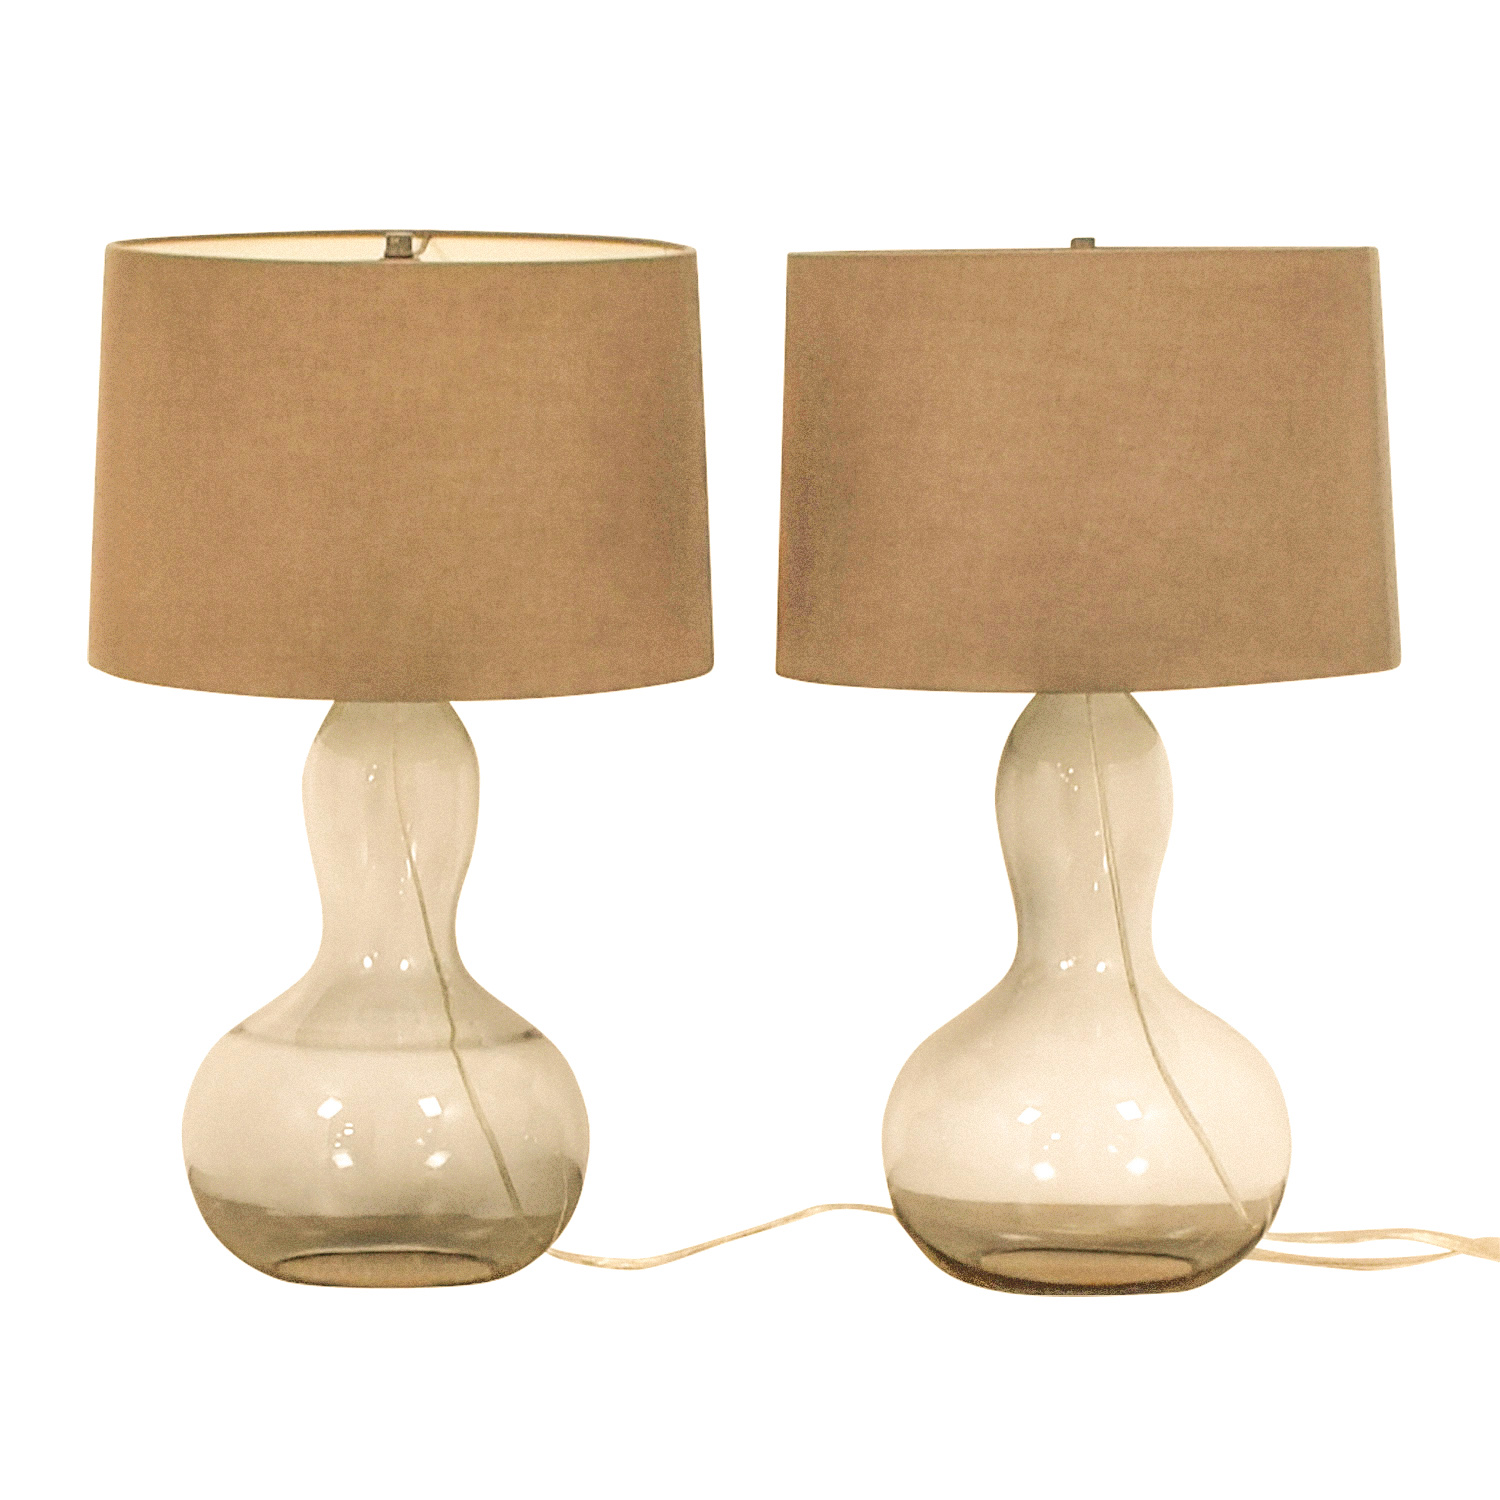 West Elm West Elm Gourd Glass Lamps discount